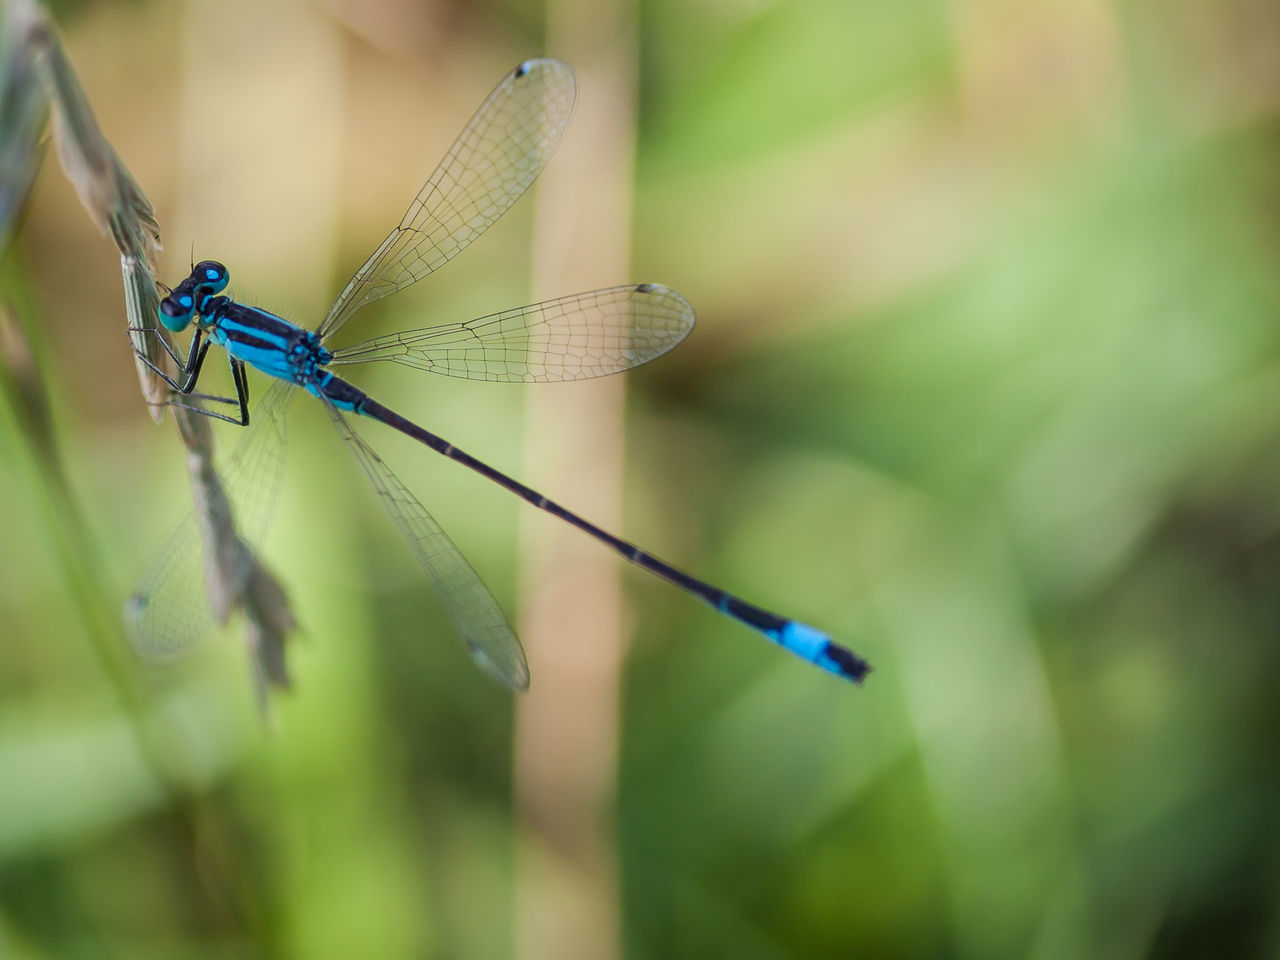 Drago-fly High BlueInsects Dragonfly Dragonfly Nature Insects EyEmReady EyeEmNewHere Green Macro Photography Makro Nature Wildlife & Nature Wildlife Photography Bluedragonfly Garden Insect Photography Insects  Libelle Libellen Macro Nature Macrophotography Nature_collection Wildlife